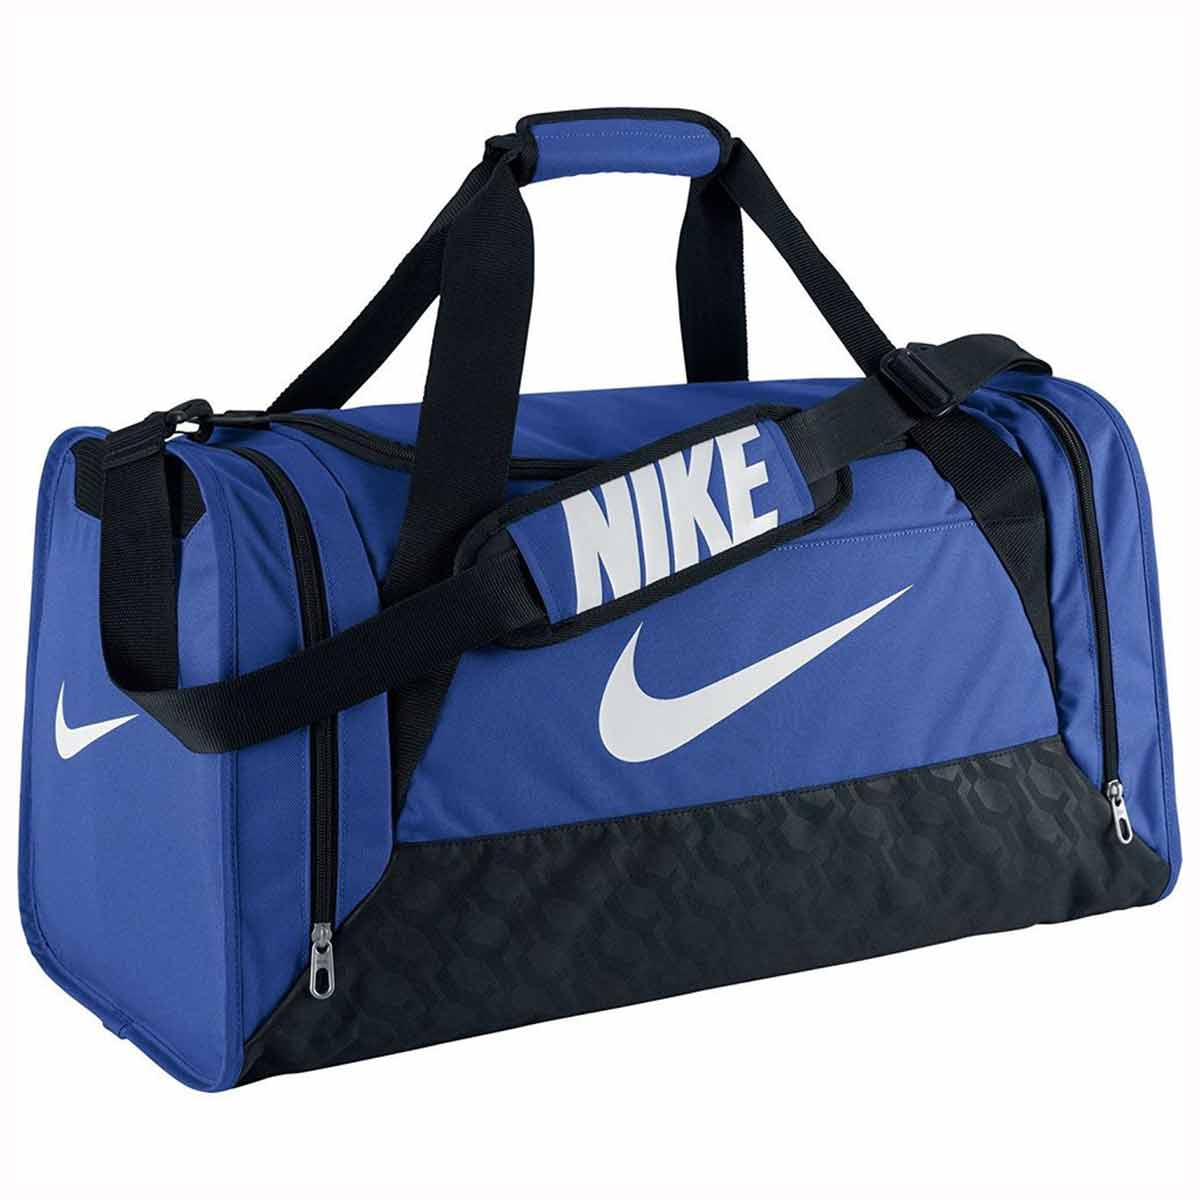 Buy Nike Brasilia 6 Medium Duffel Bag Online India c105df7e6d